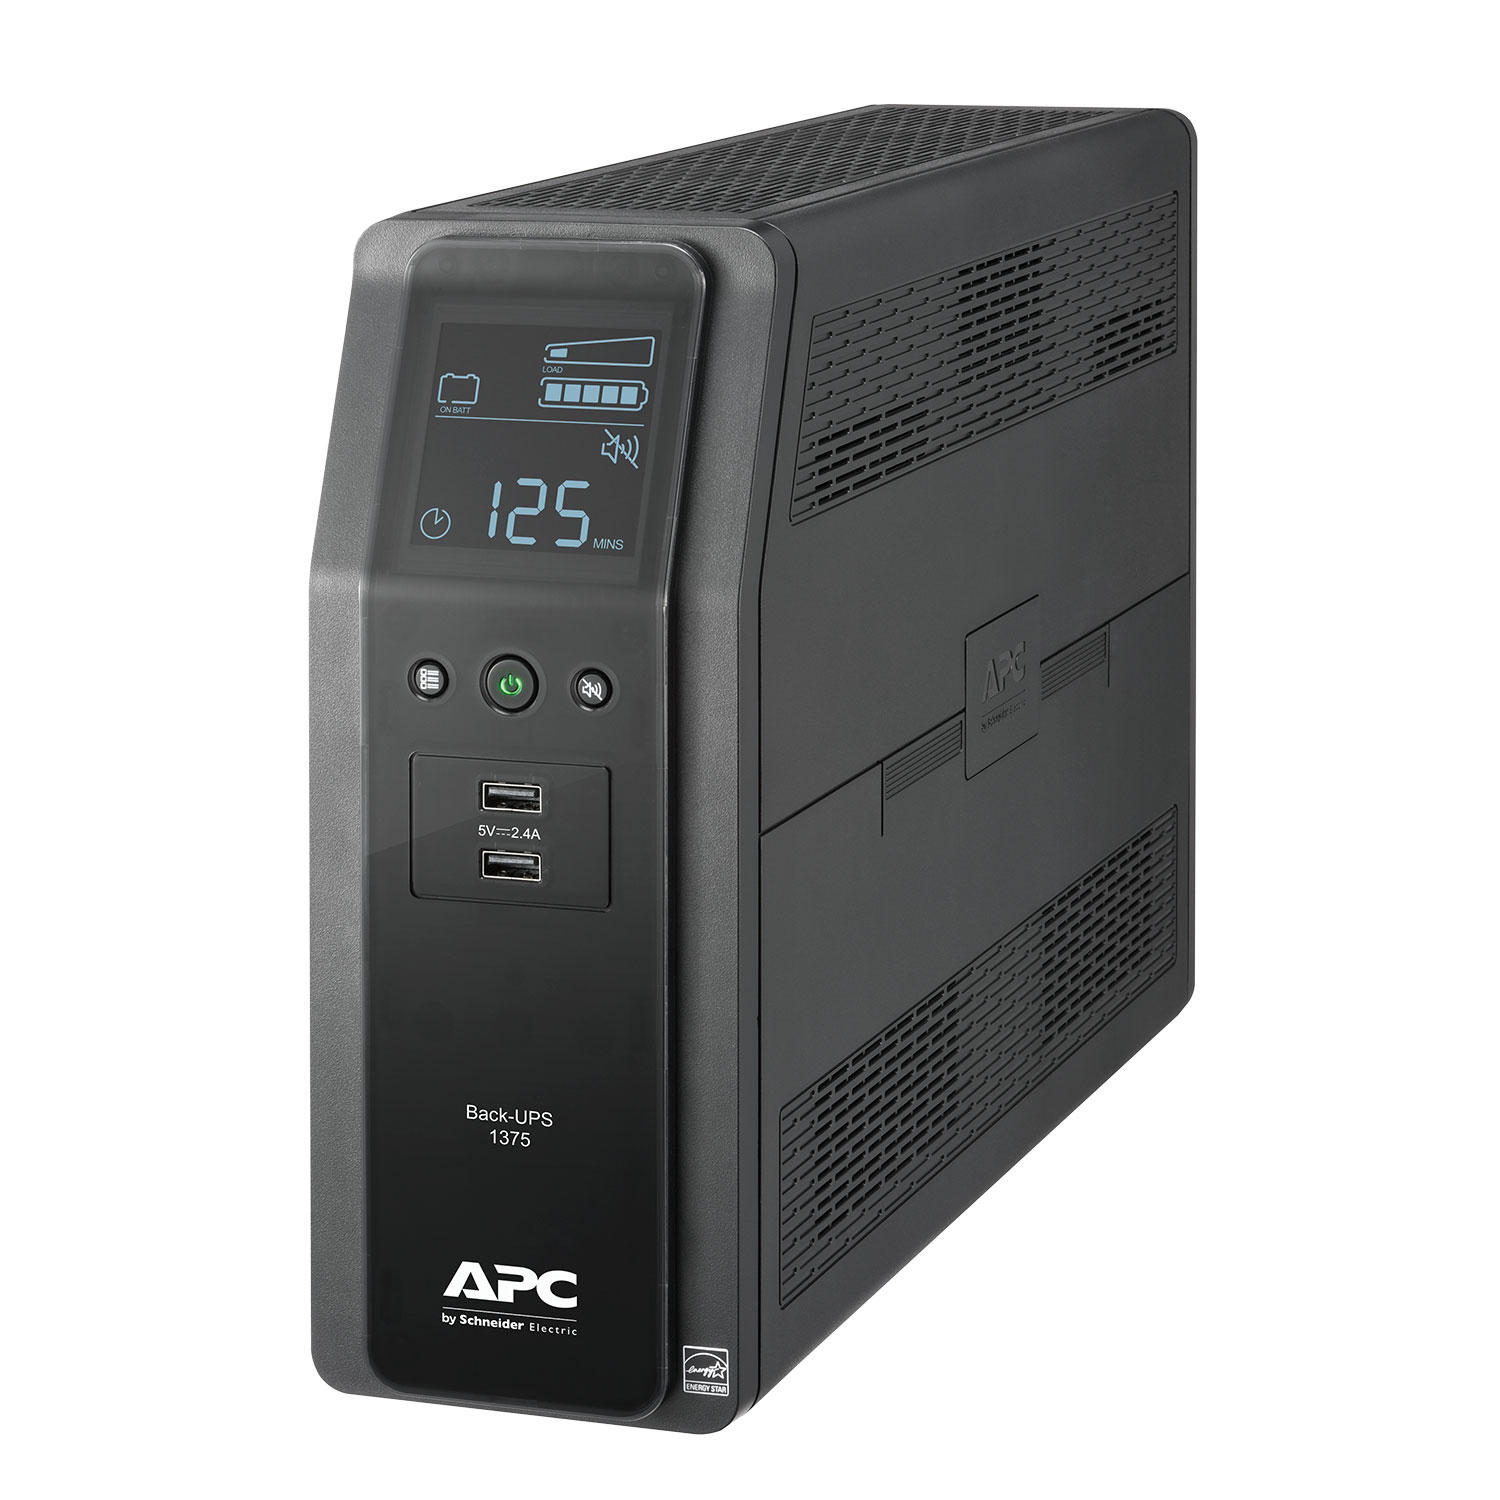 APC Back-UPS Pro Tower 1375VA 10 Outlet 2 USB